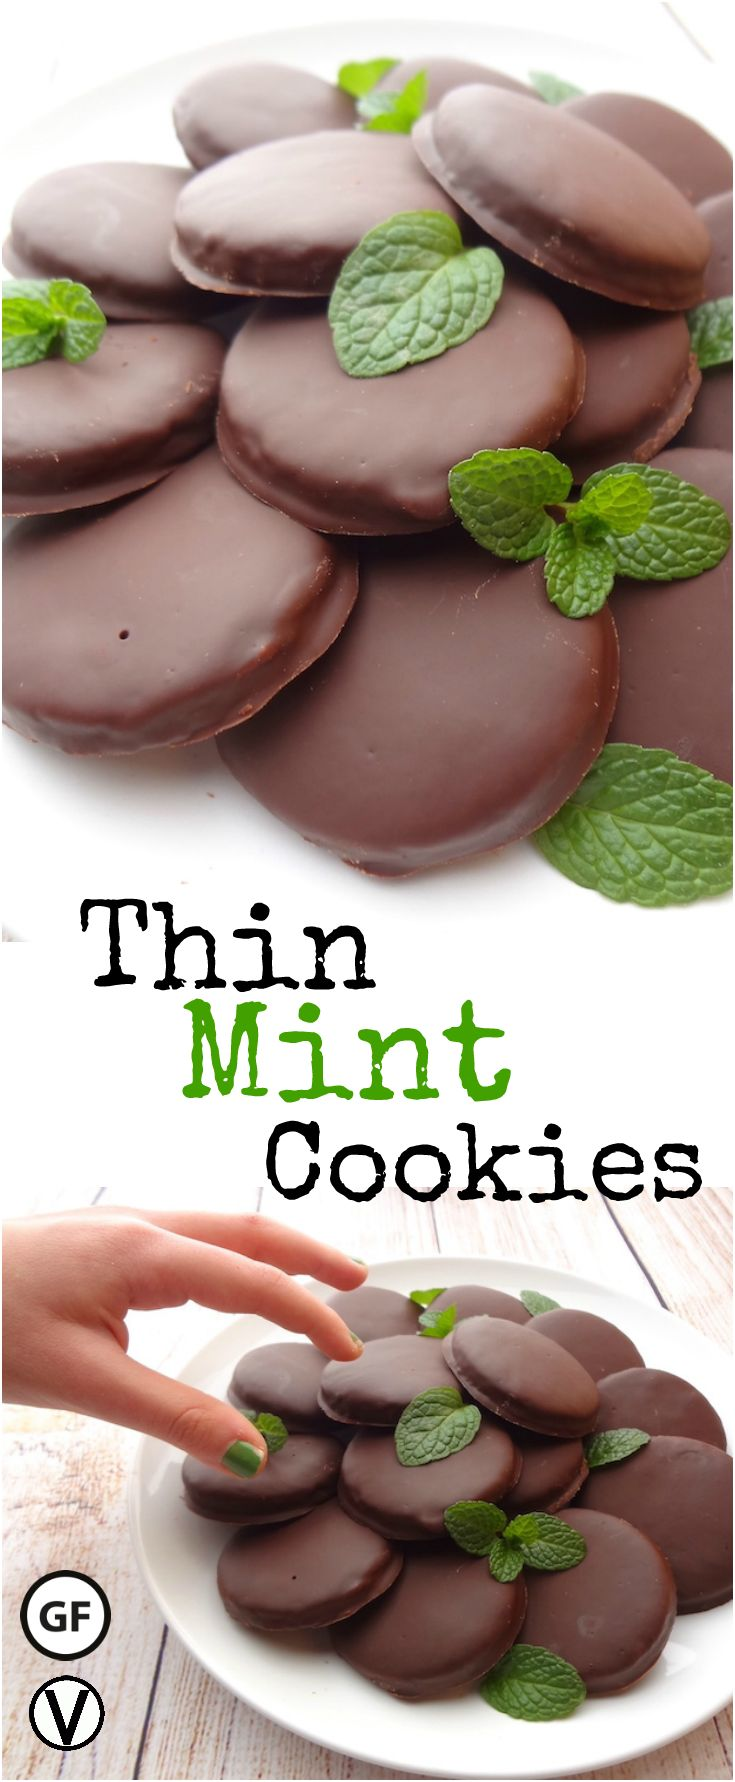 "These Gluten-Free Thin Mint Cookies are so good you can't eat just one. | Reminiscent of the classing ""Girl Scout"" cookie. Vegan, gluten-free and require only 10 ingredients. Enjoy a healthier option all year long."